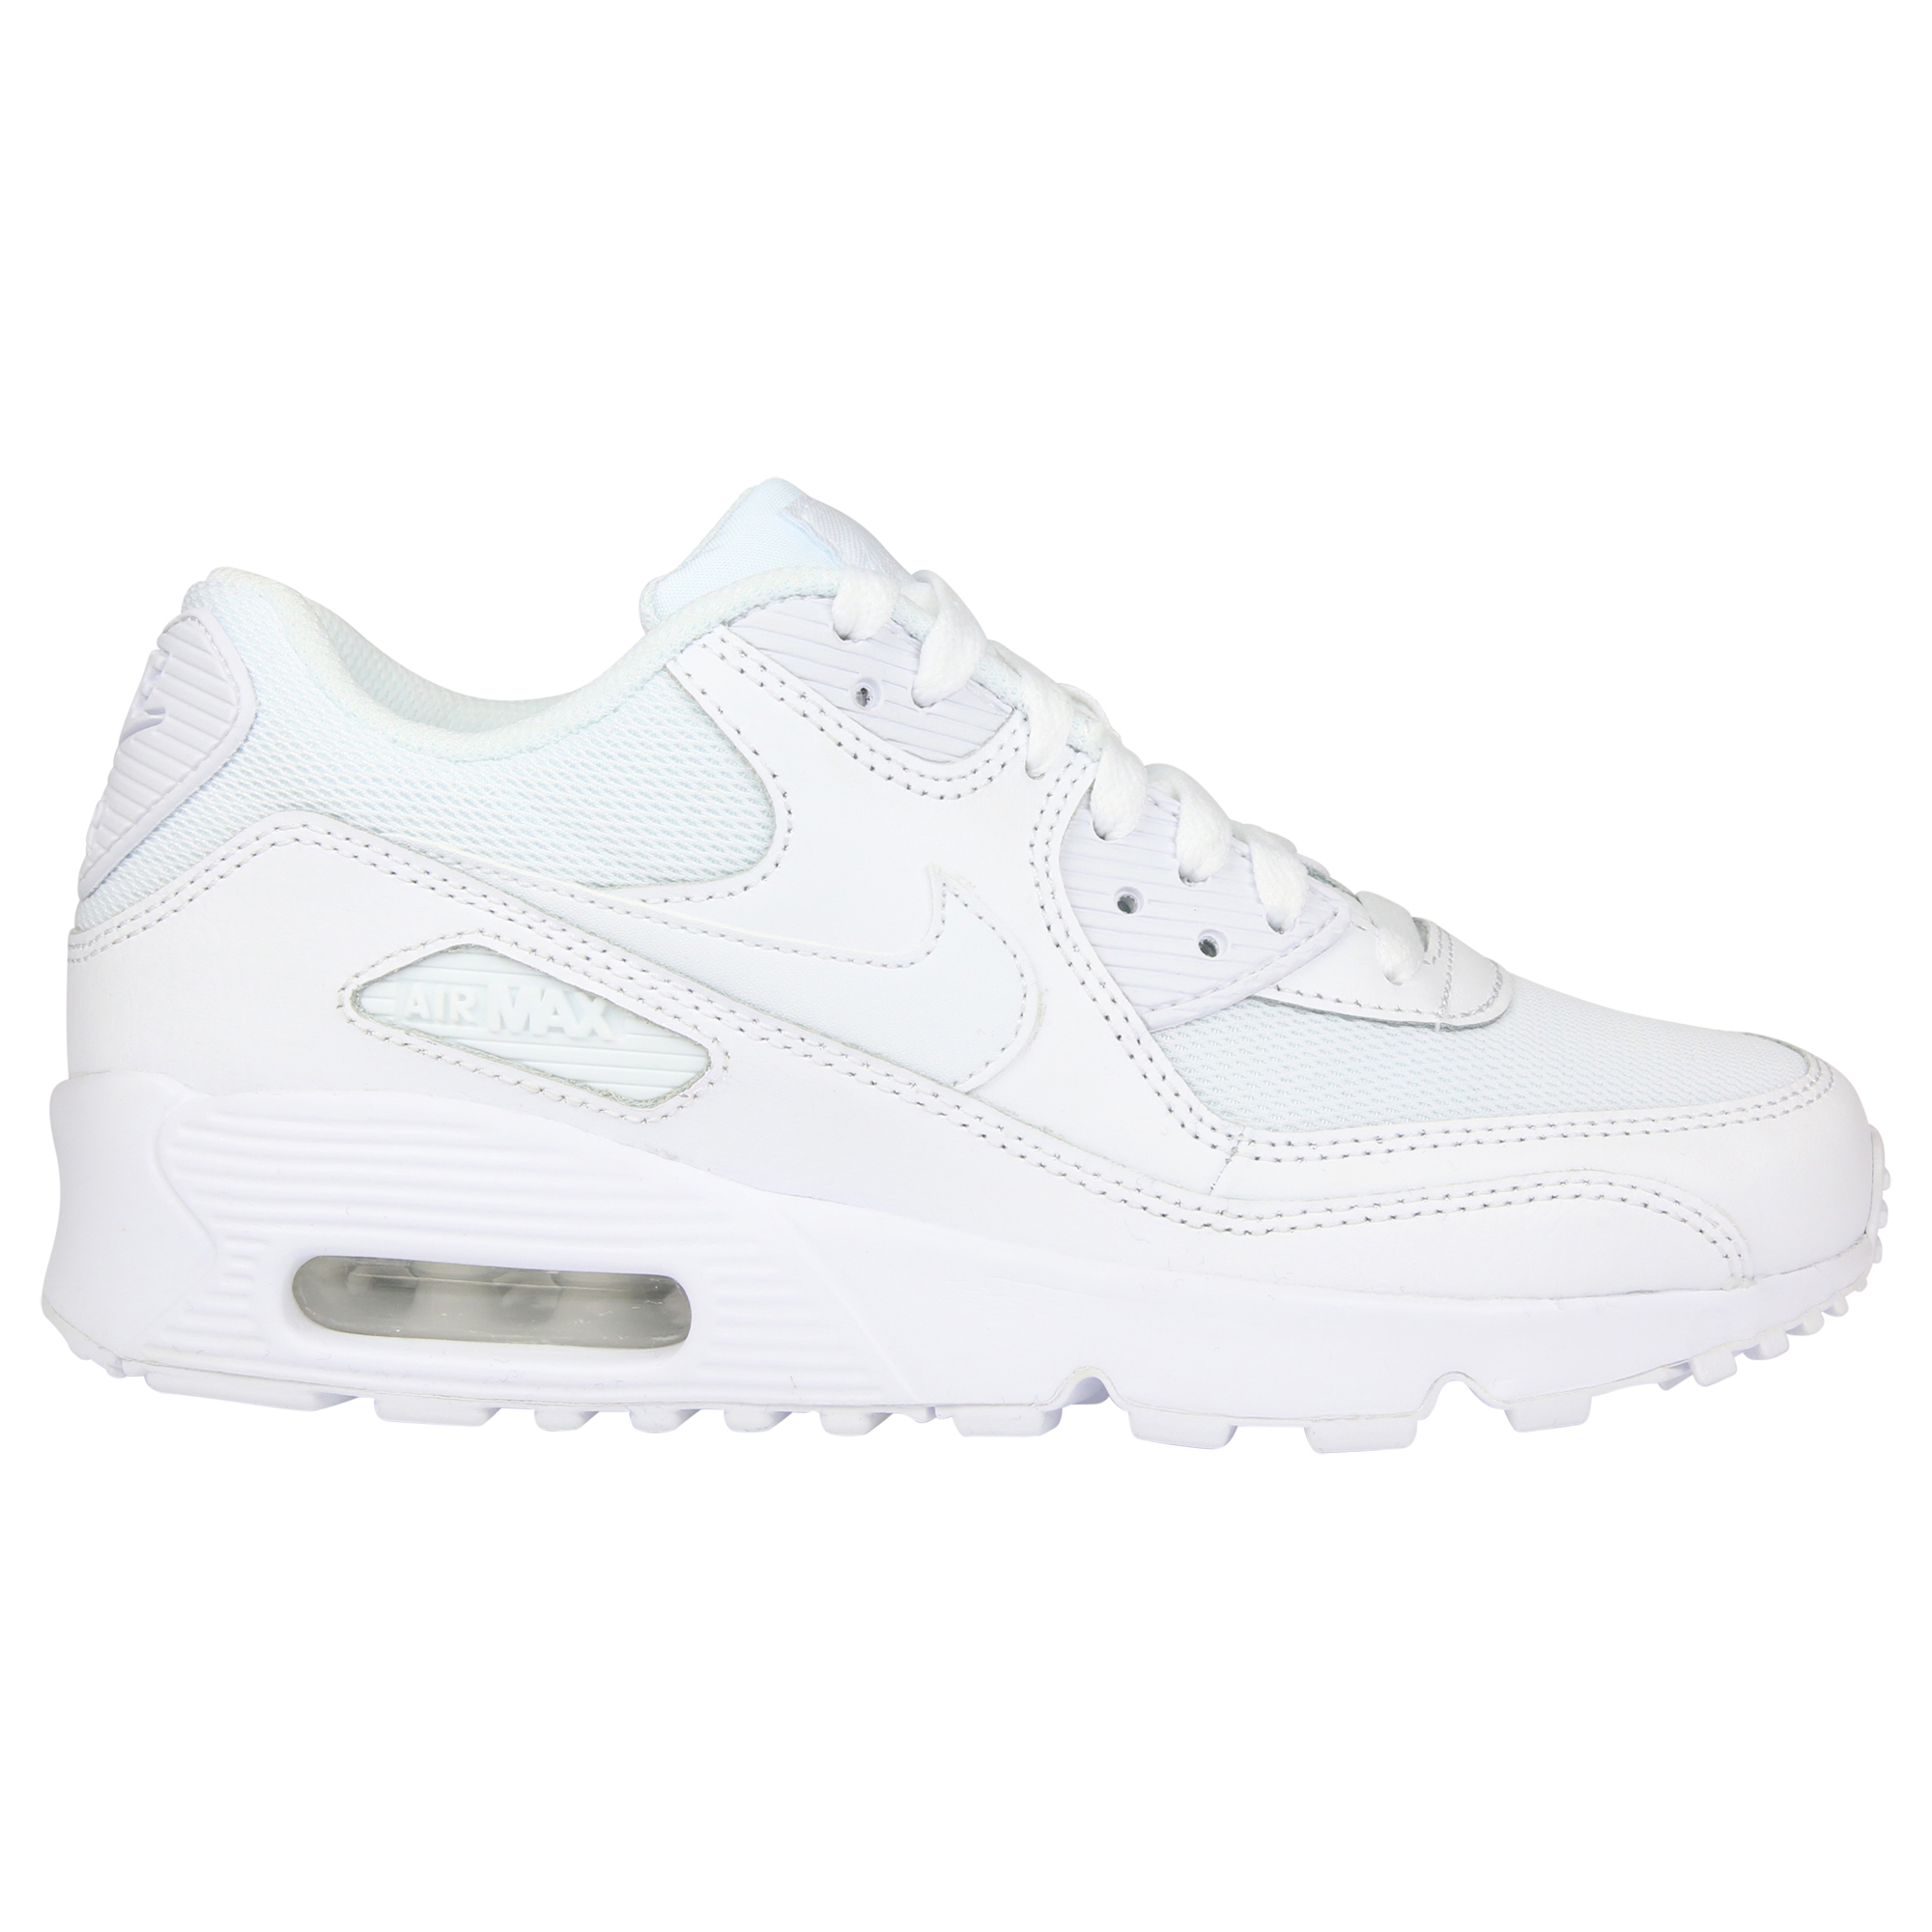 buy online 9f610 0a862 ... kids shoes td 460ee6 35cda 9100c order nike air max 90 gs chaussures de  sport 697d3 02dd2 ...